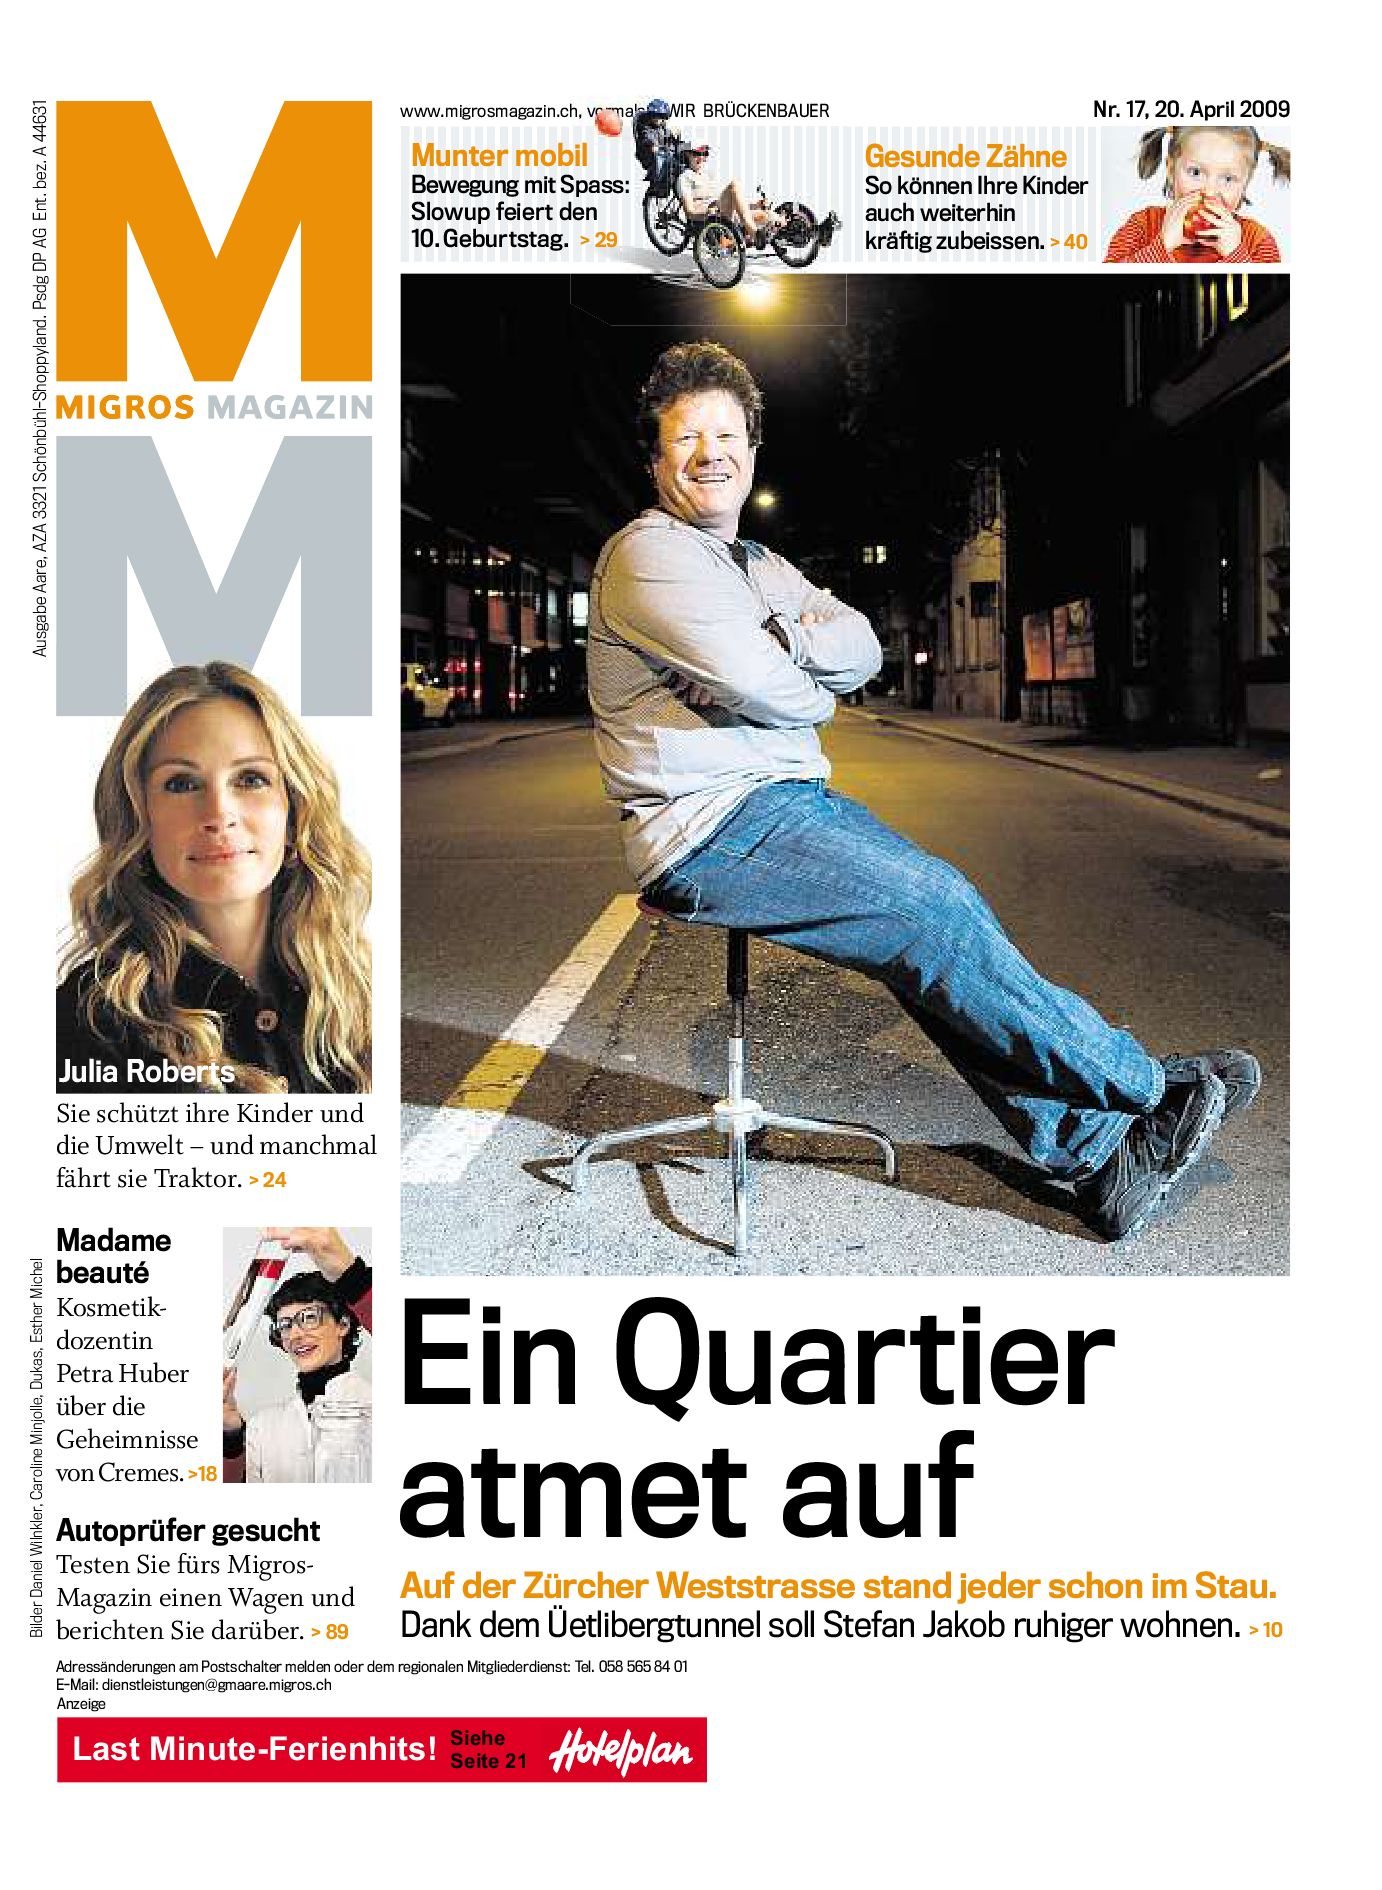 Migros Magazin 17 2009 D VS By Migros Genossenschafts Bund   Issuu